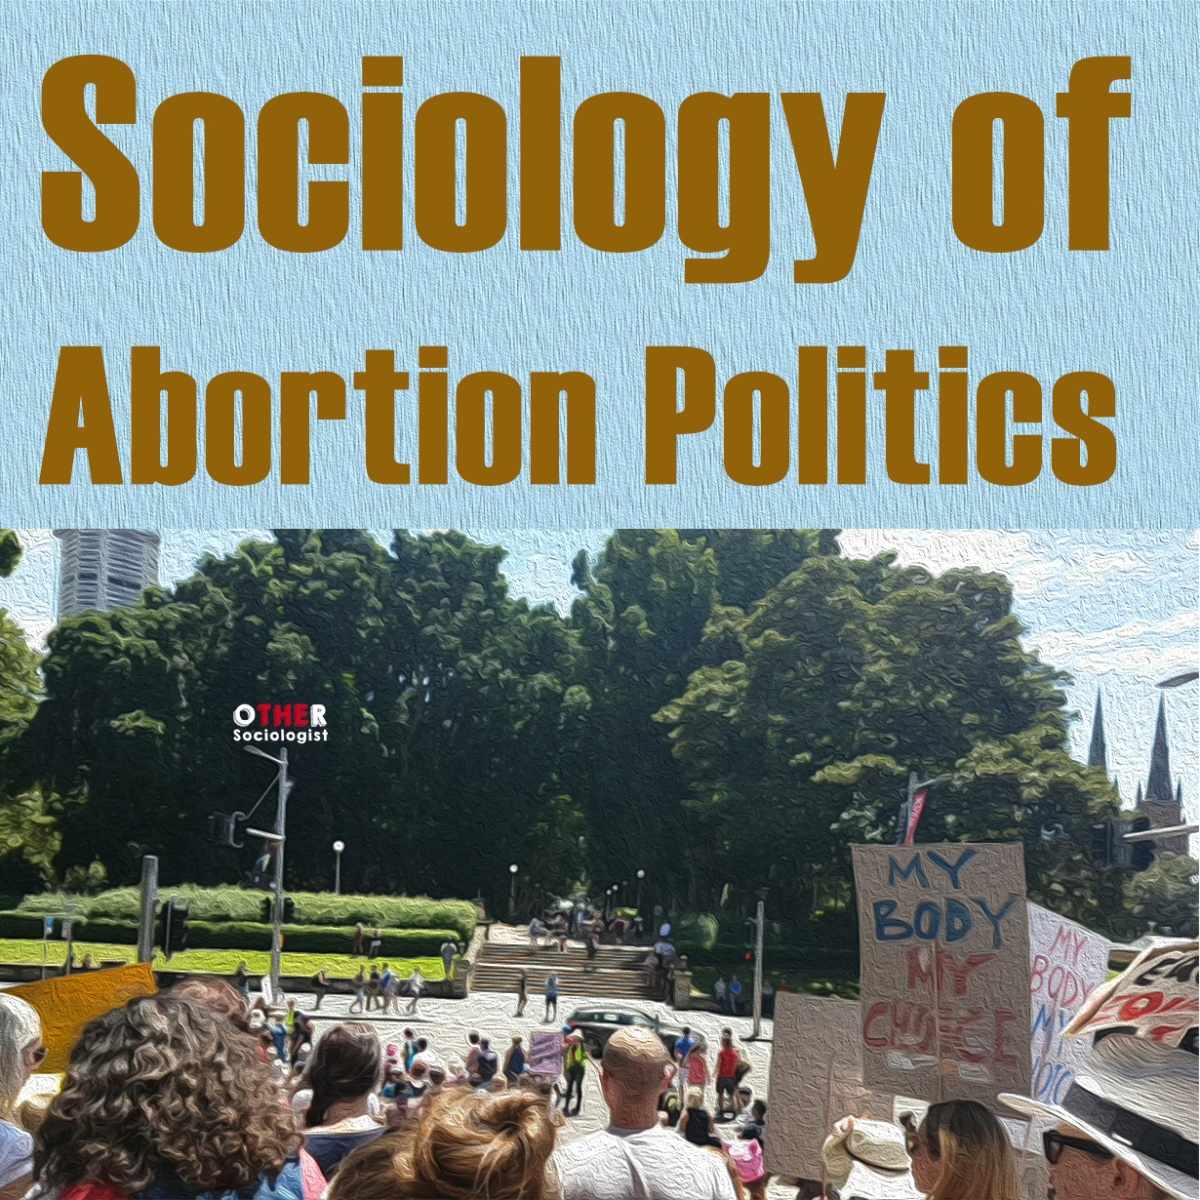 Sociology of Abortion Politics